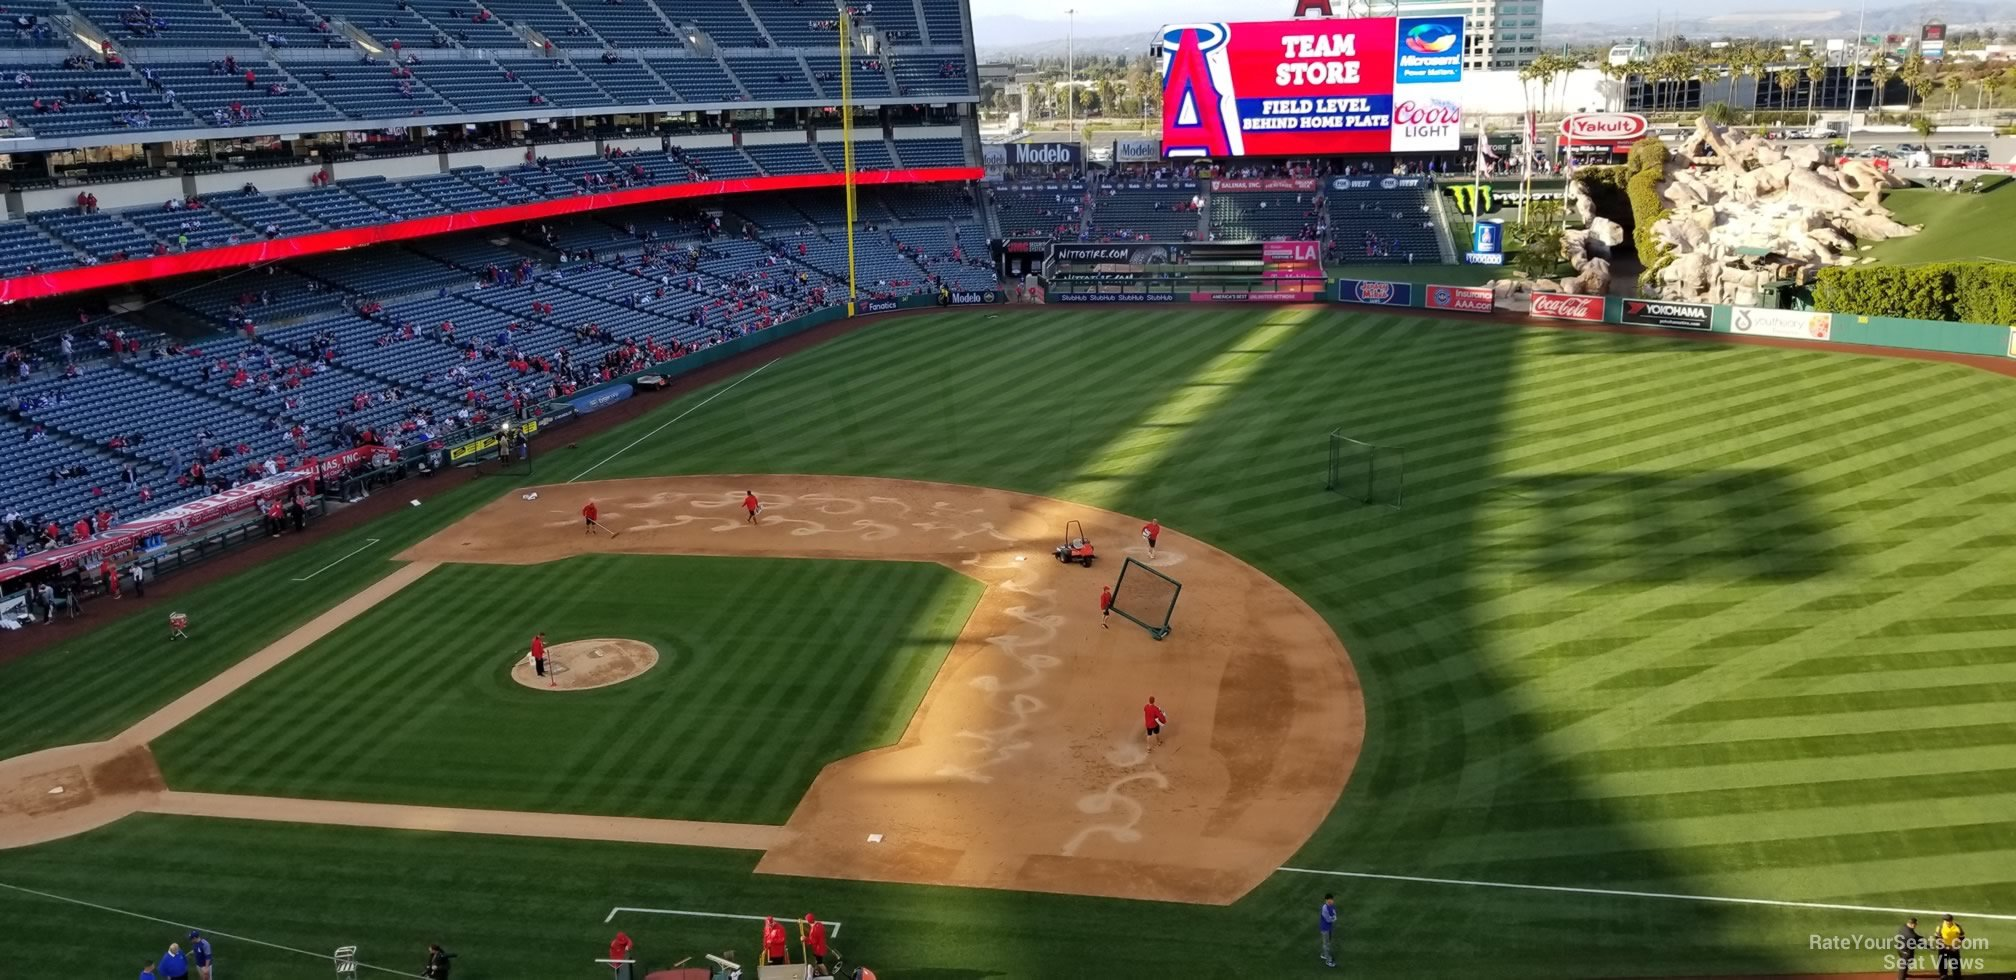 Angel Stadium Section 426 - RateYourSeats.com